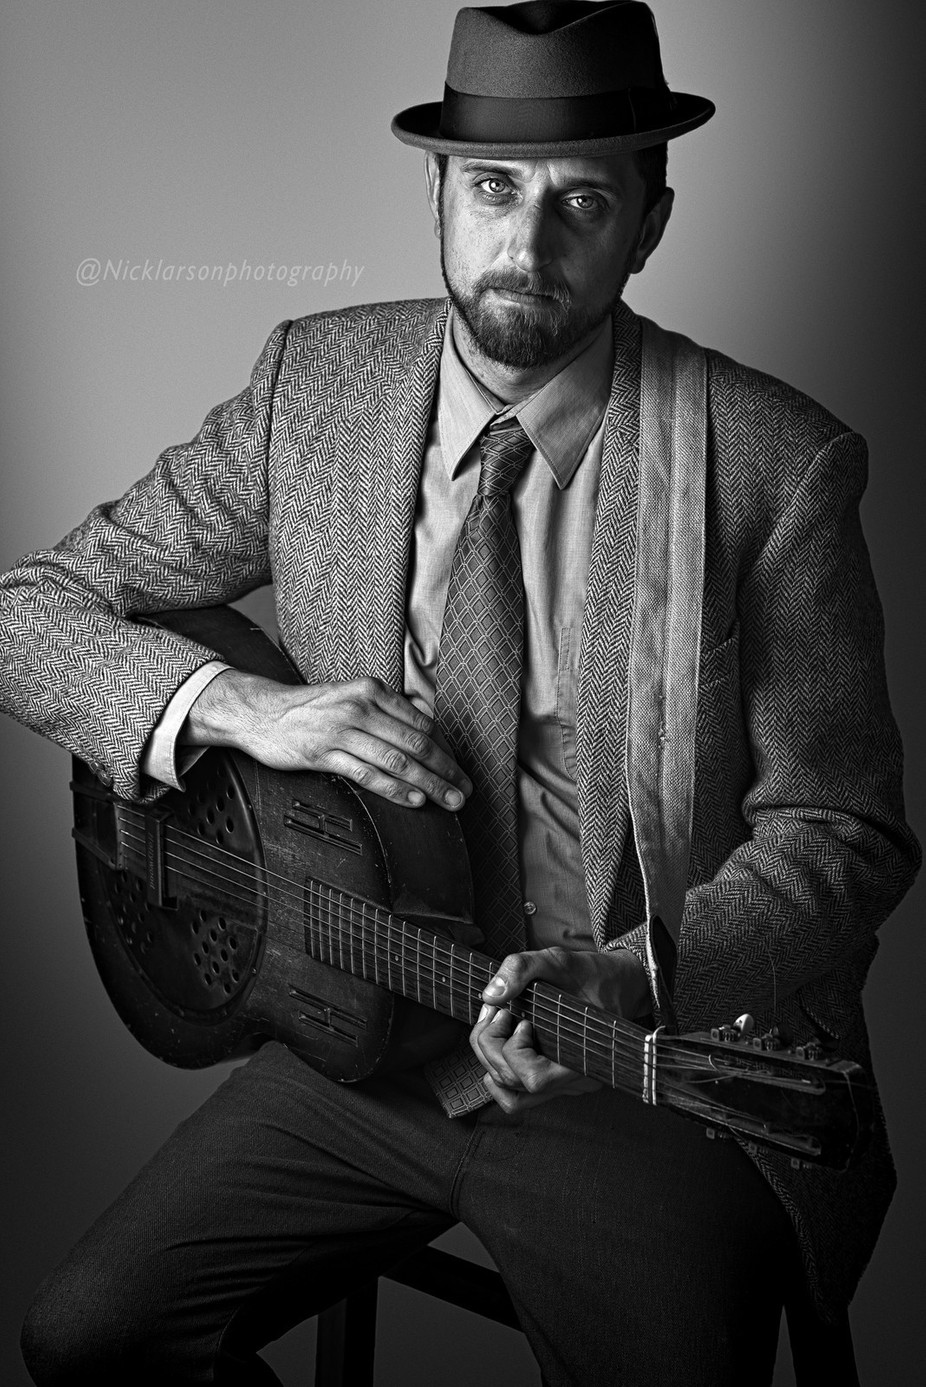 Jason by NickLarsonPhotography - Musical Instruments Photo Contest